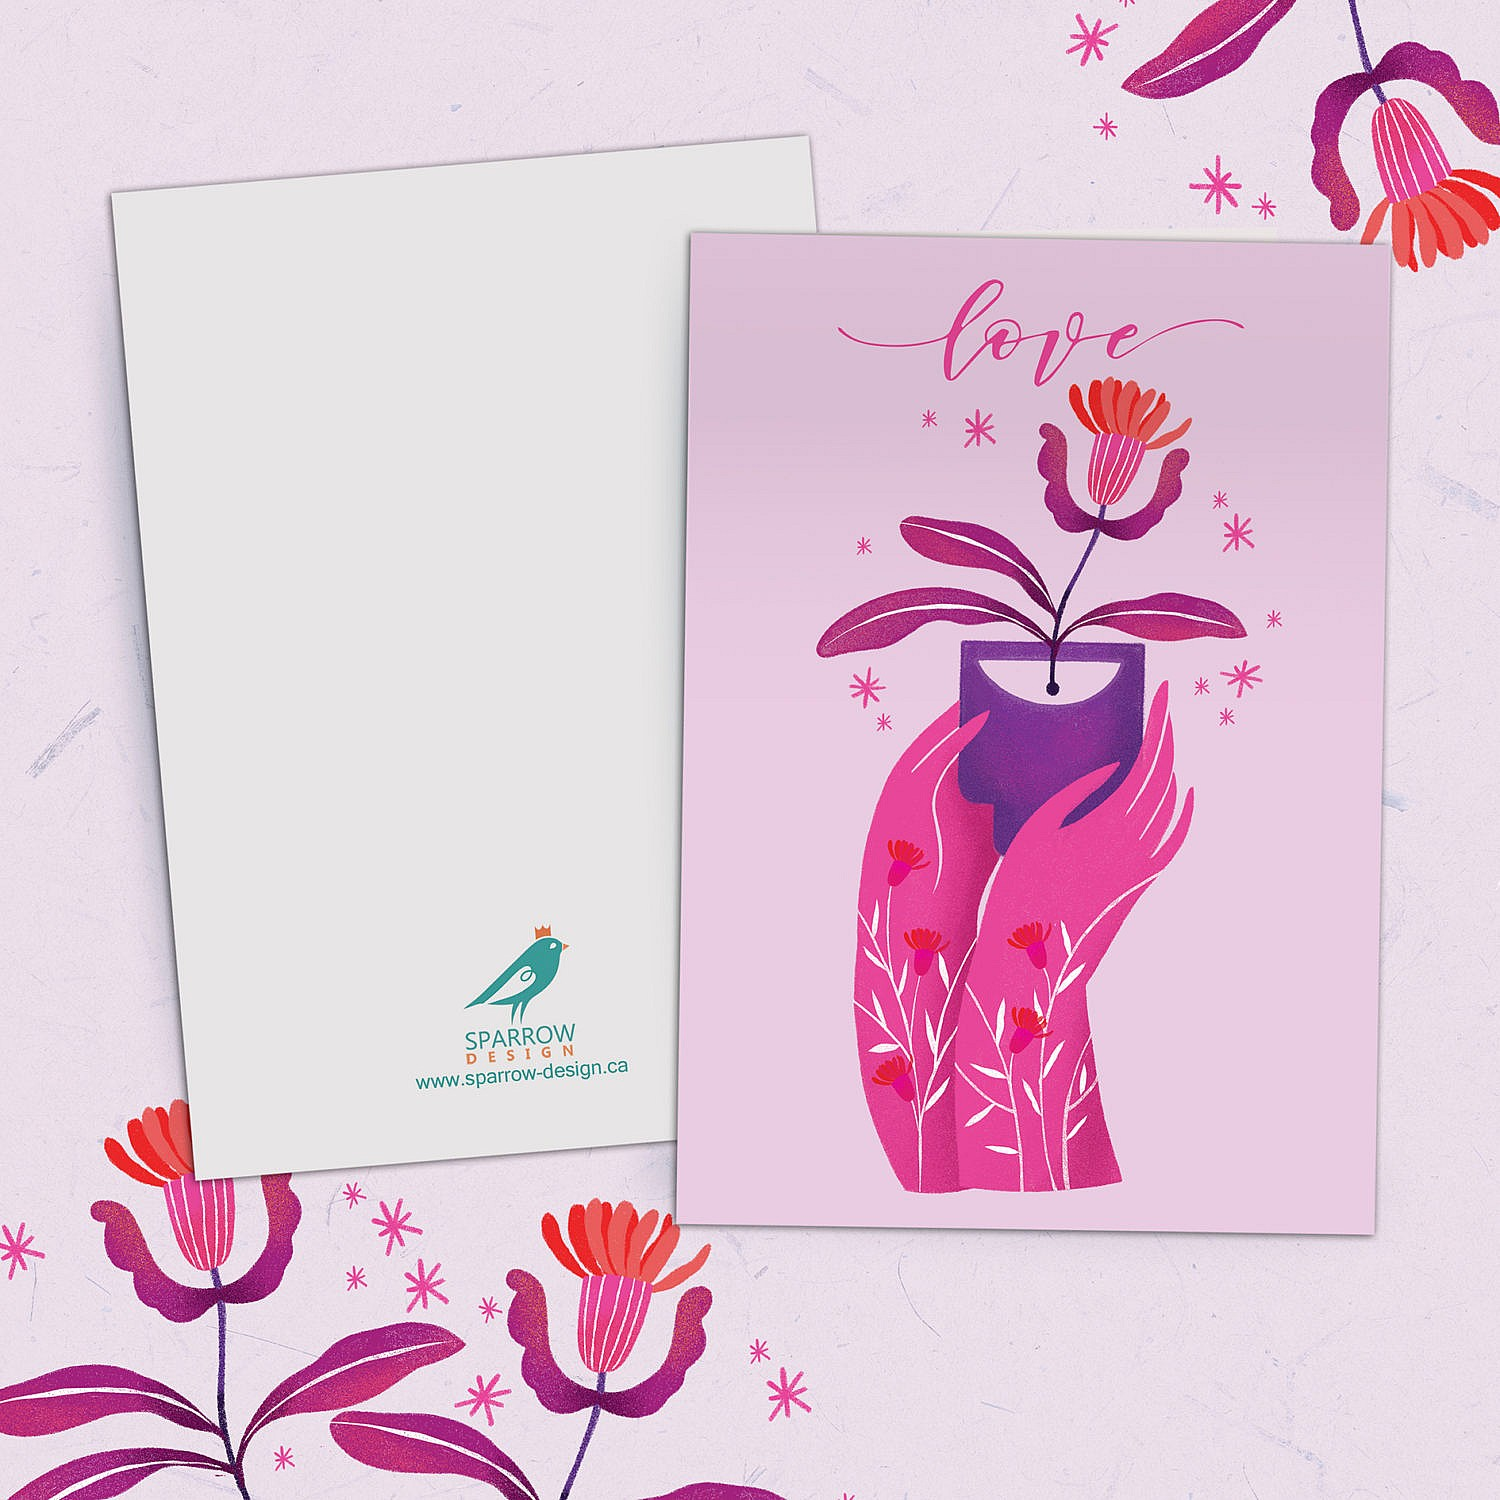 showing a lovely valentine's card. two hands are offering a beautiful flower. The illustration is mostly pink.